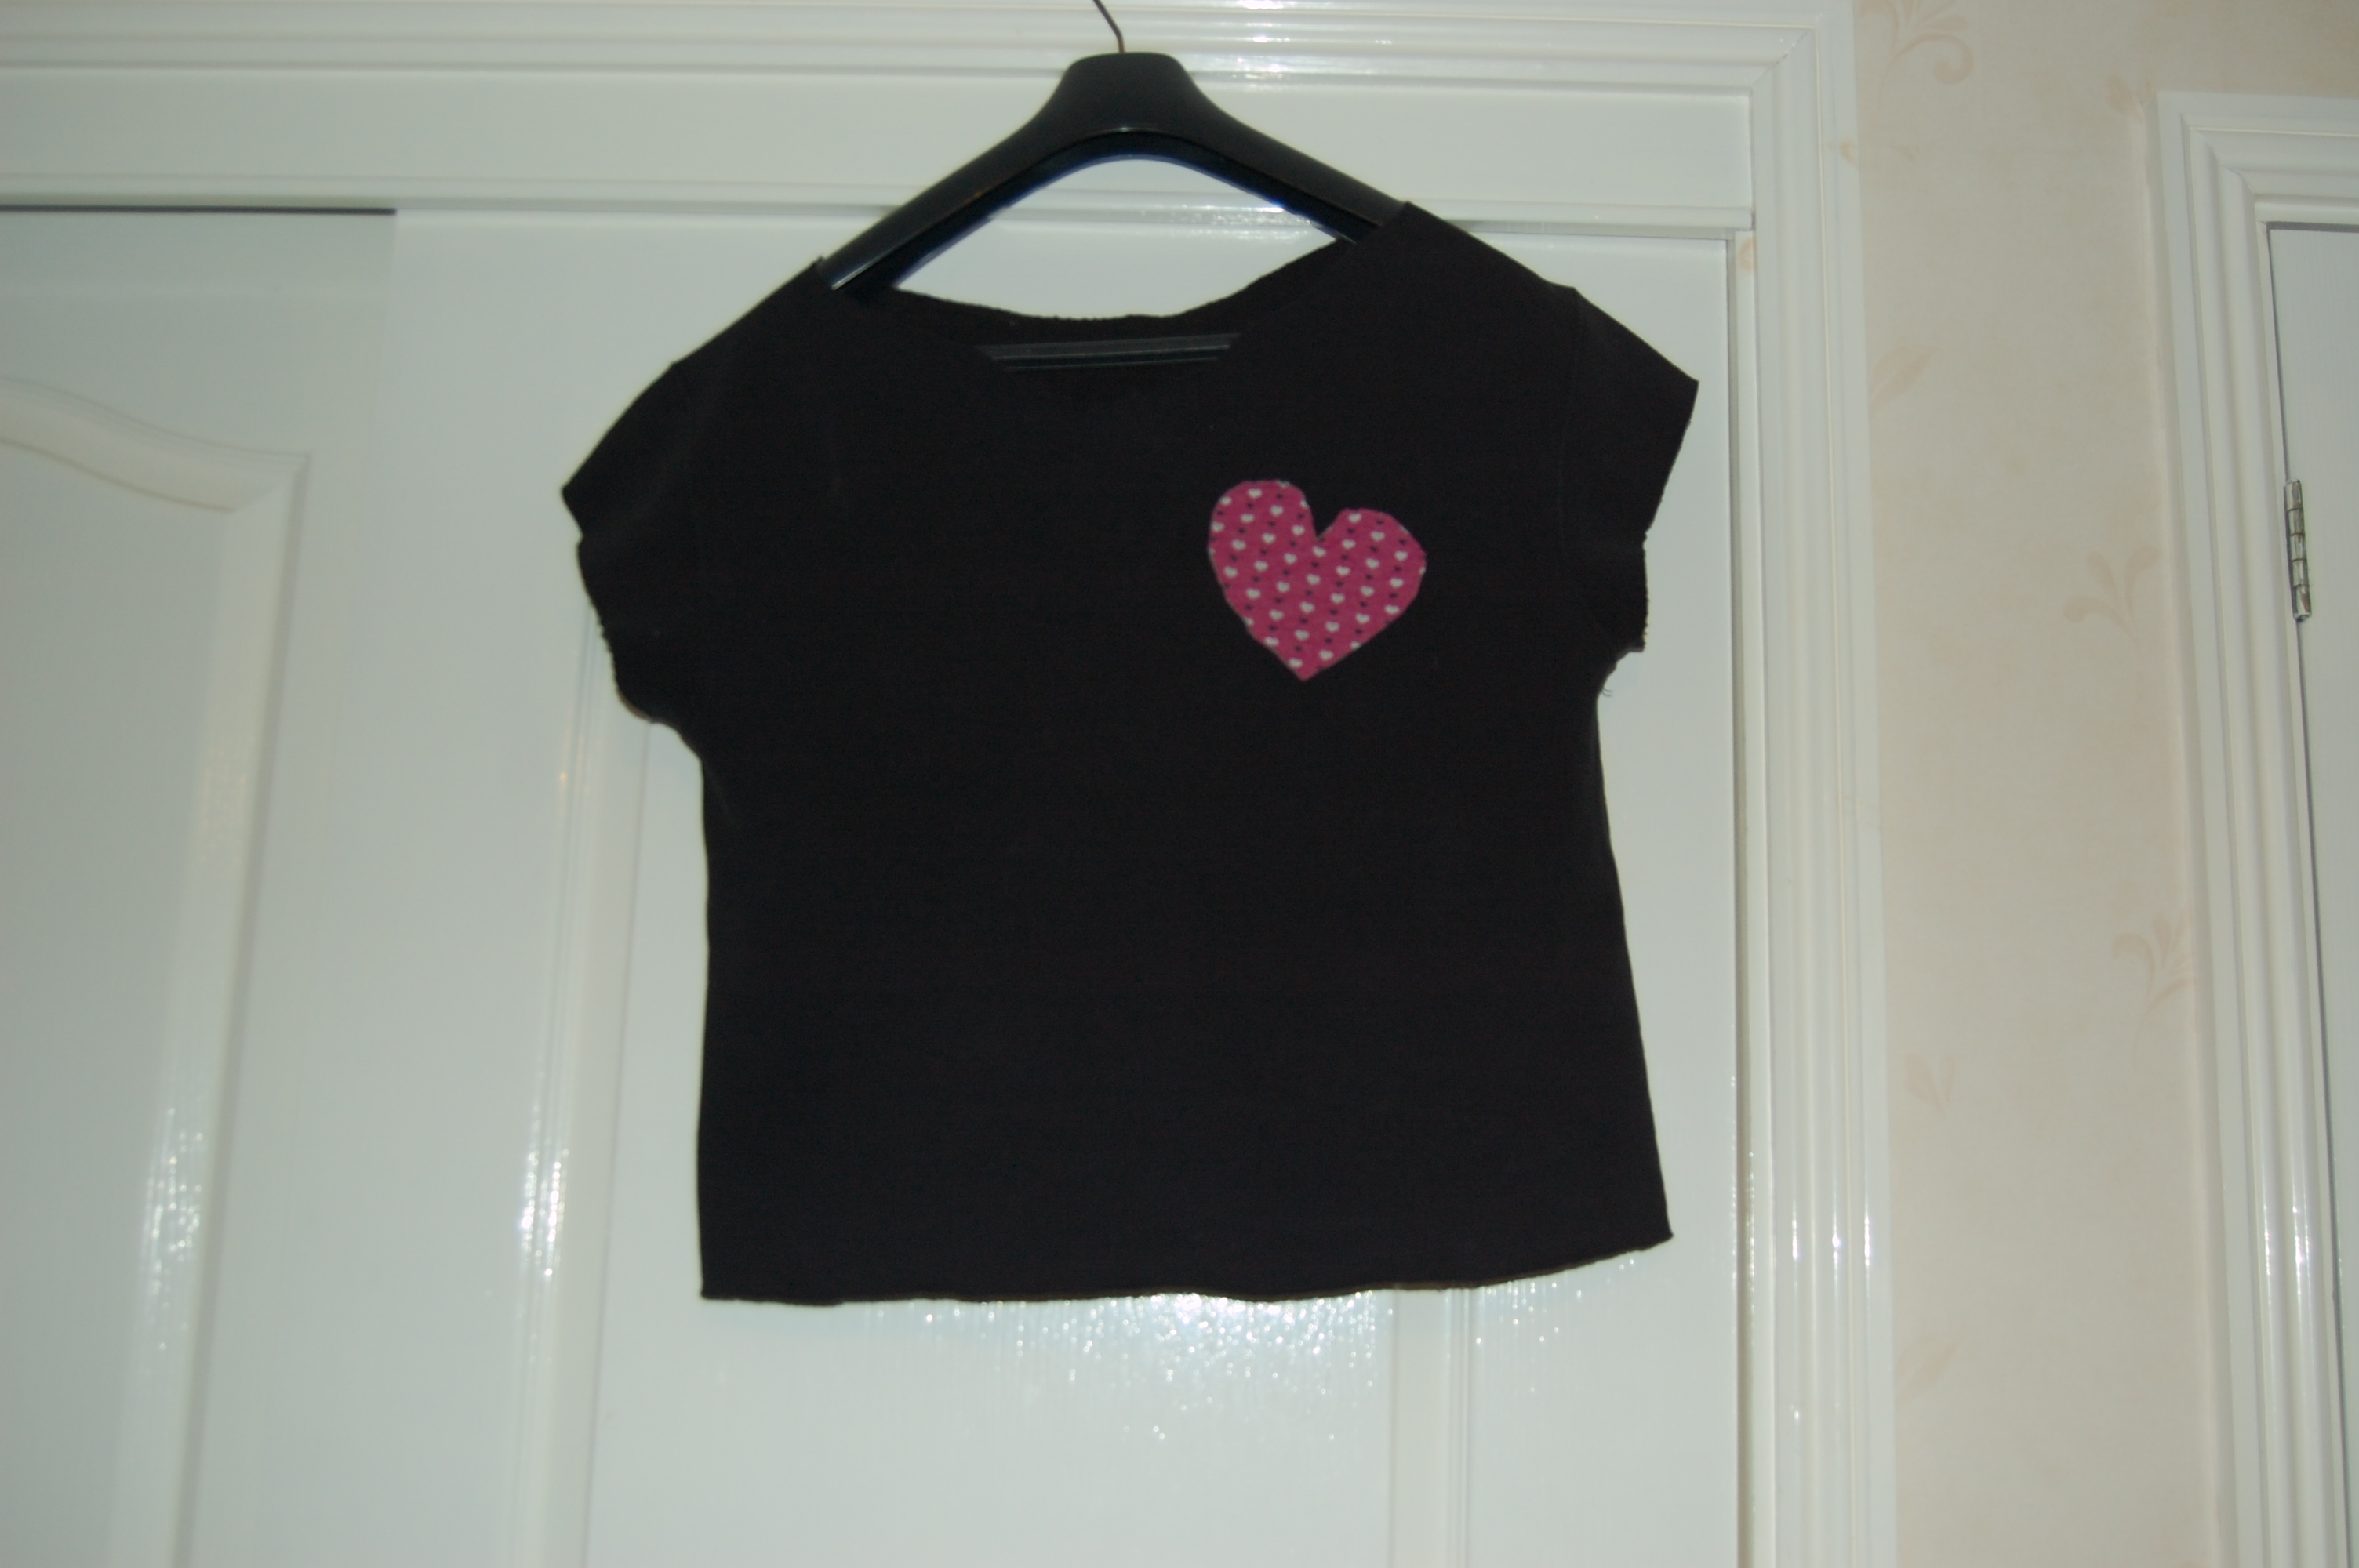 084 An Upcycled Heart Top For Valentines Day